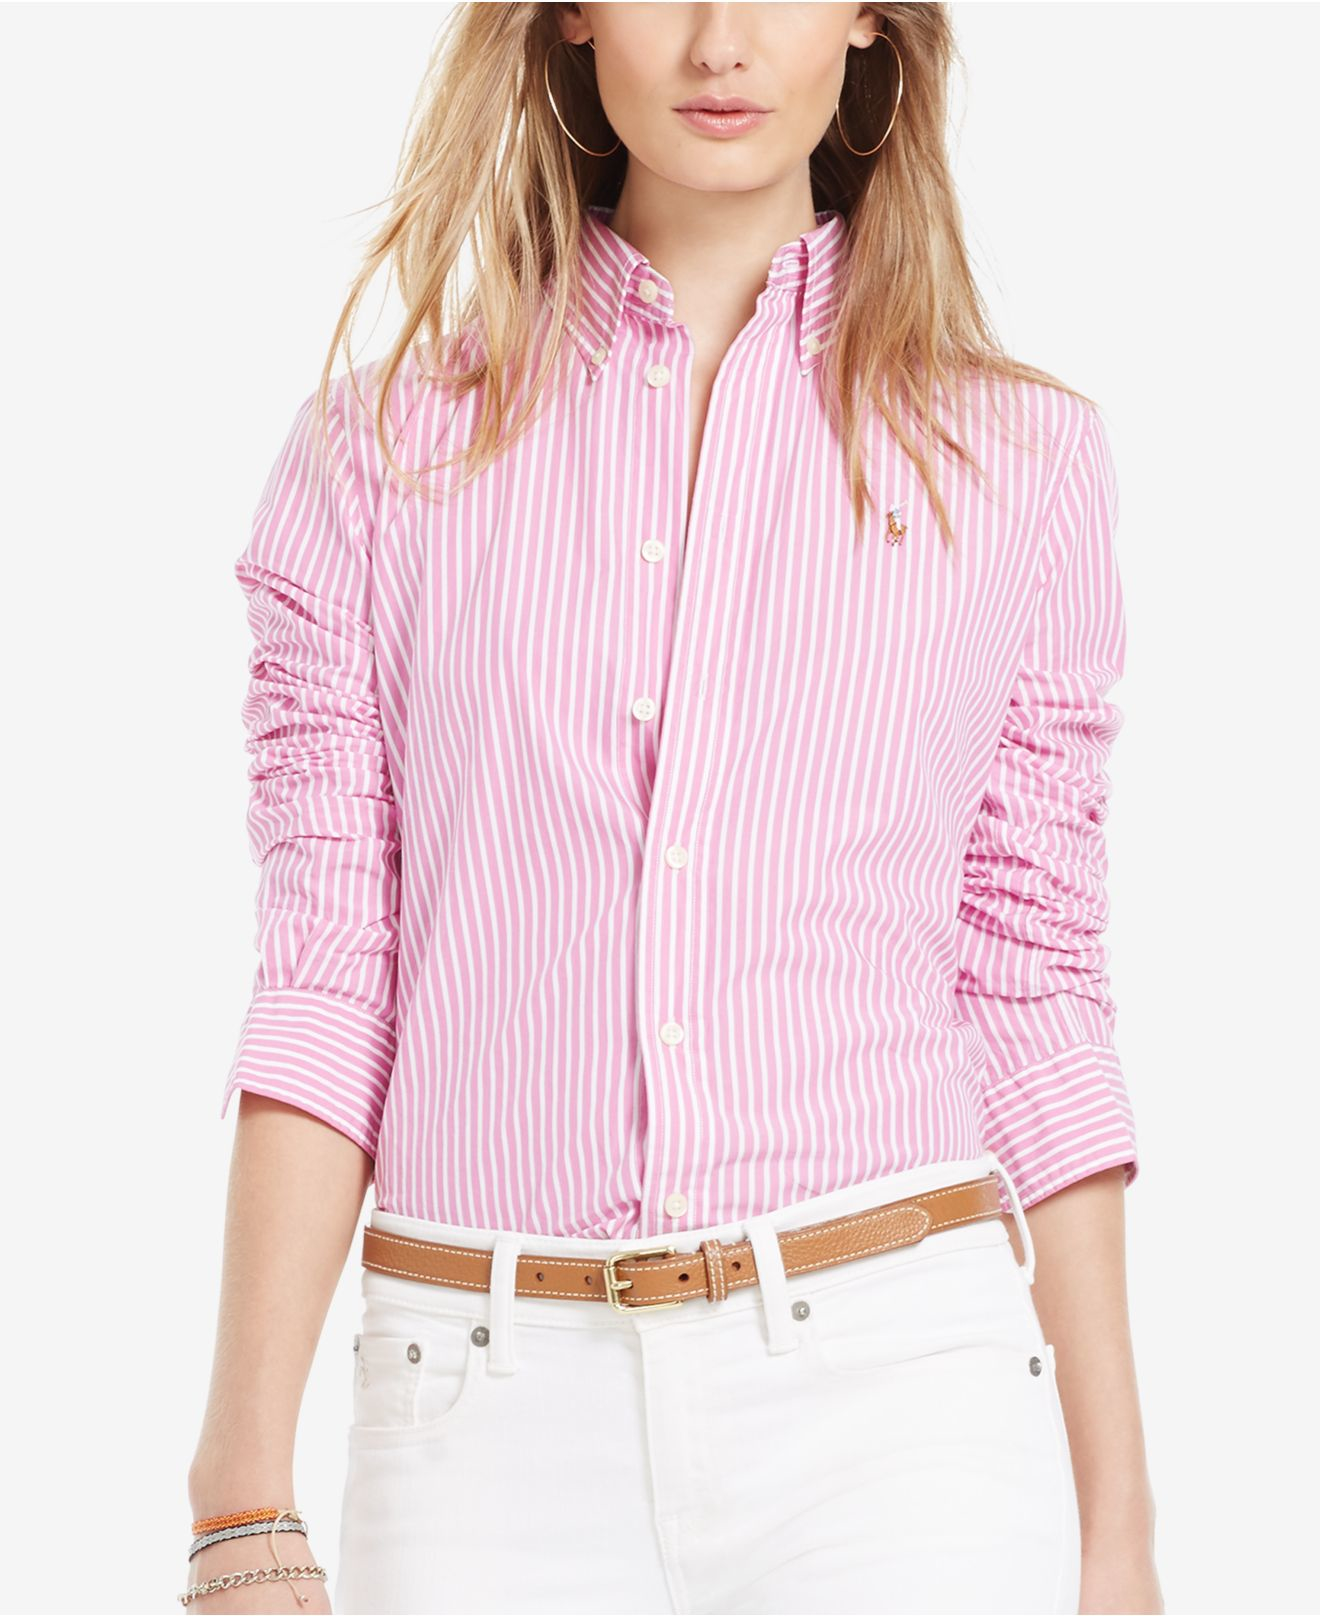 197d029987 shopping lyst polo ralph lauren custom fit striped shirt in pink 5afb1 5bbf6